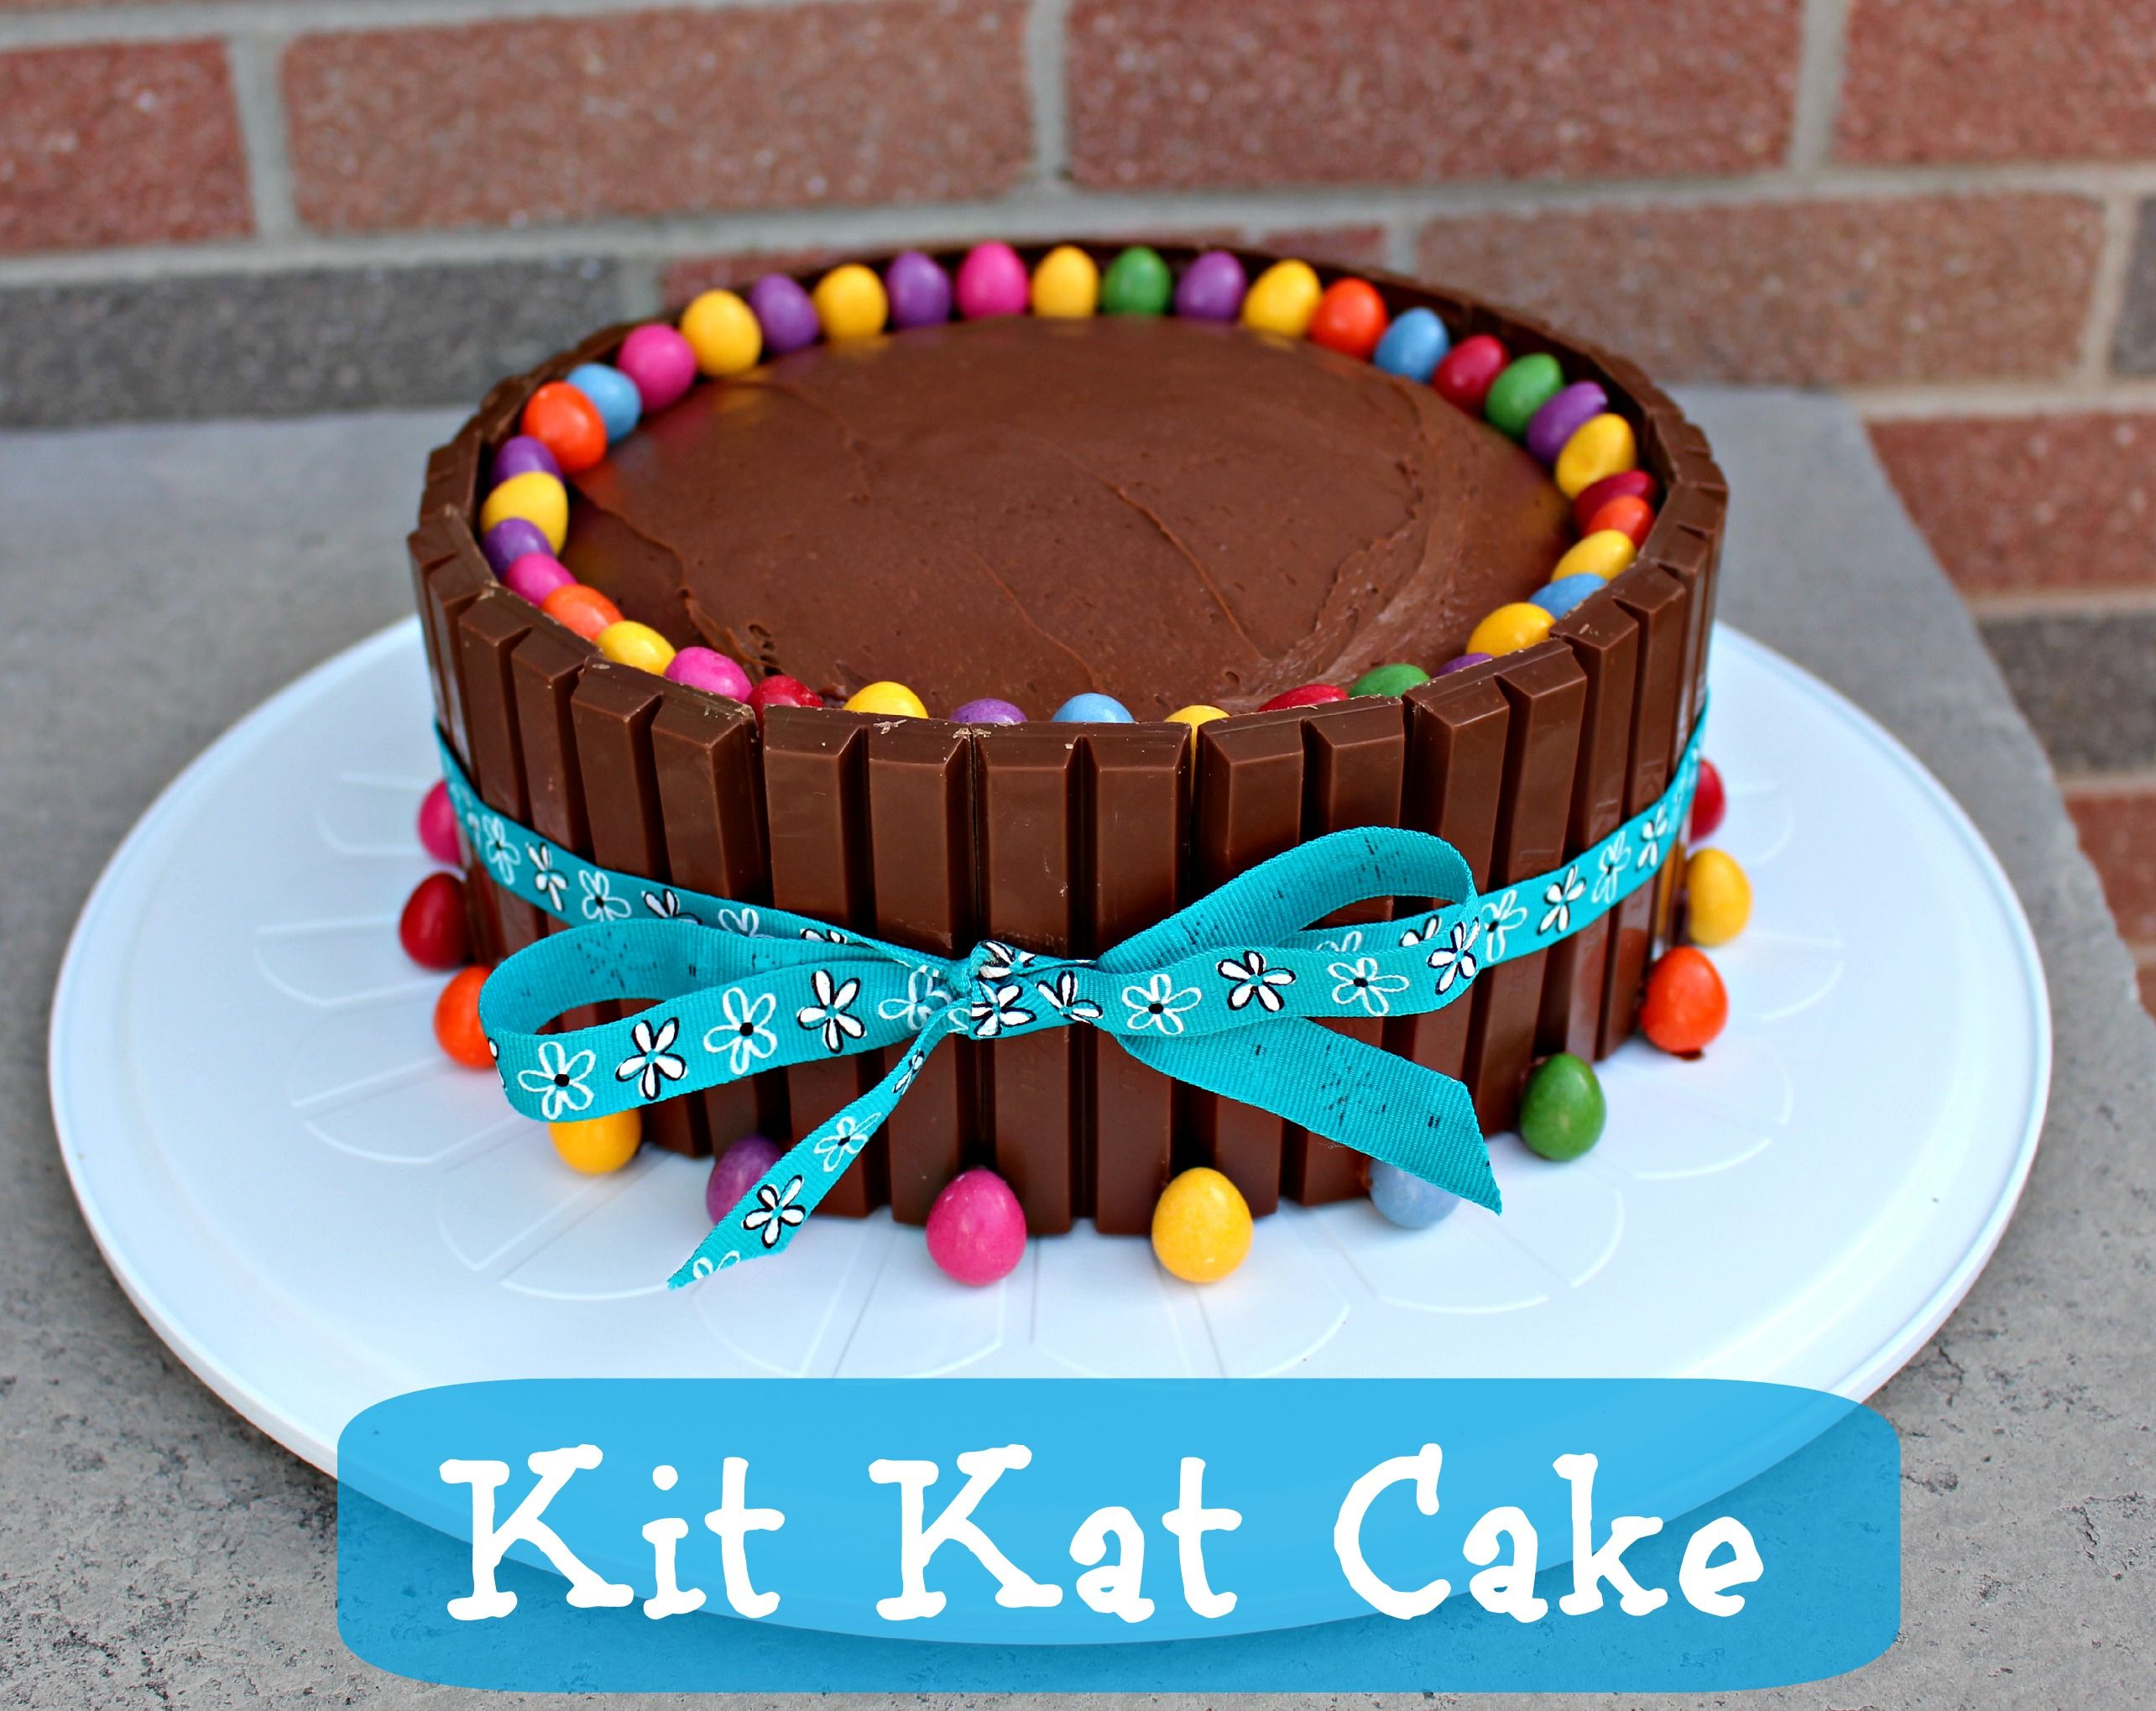 Fantastic Kit Kat Cake Recipe With Images Kit Kat Cake Easy Birthday Funny Birthday Cards Online Inifodamsfinfo